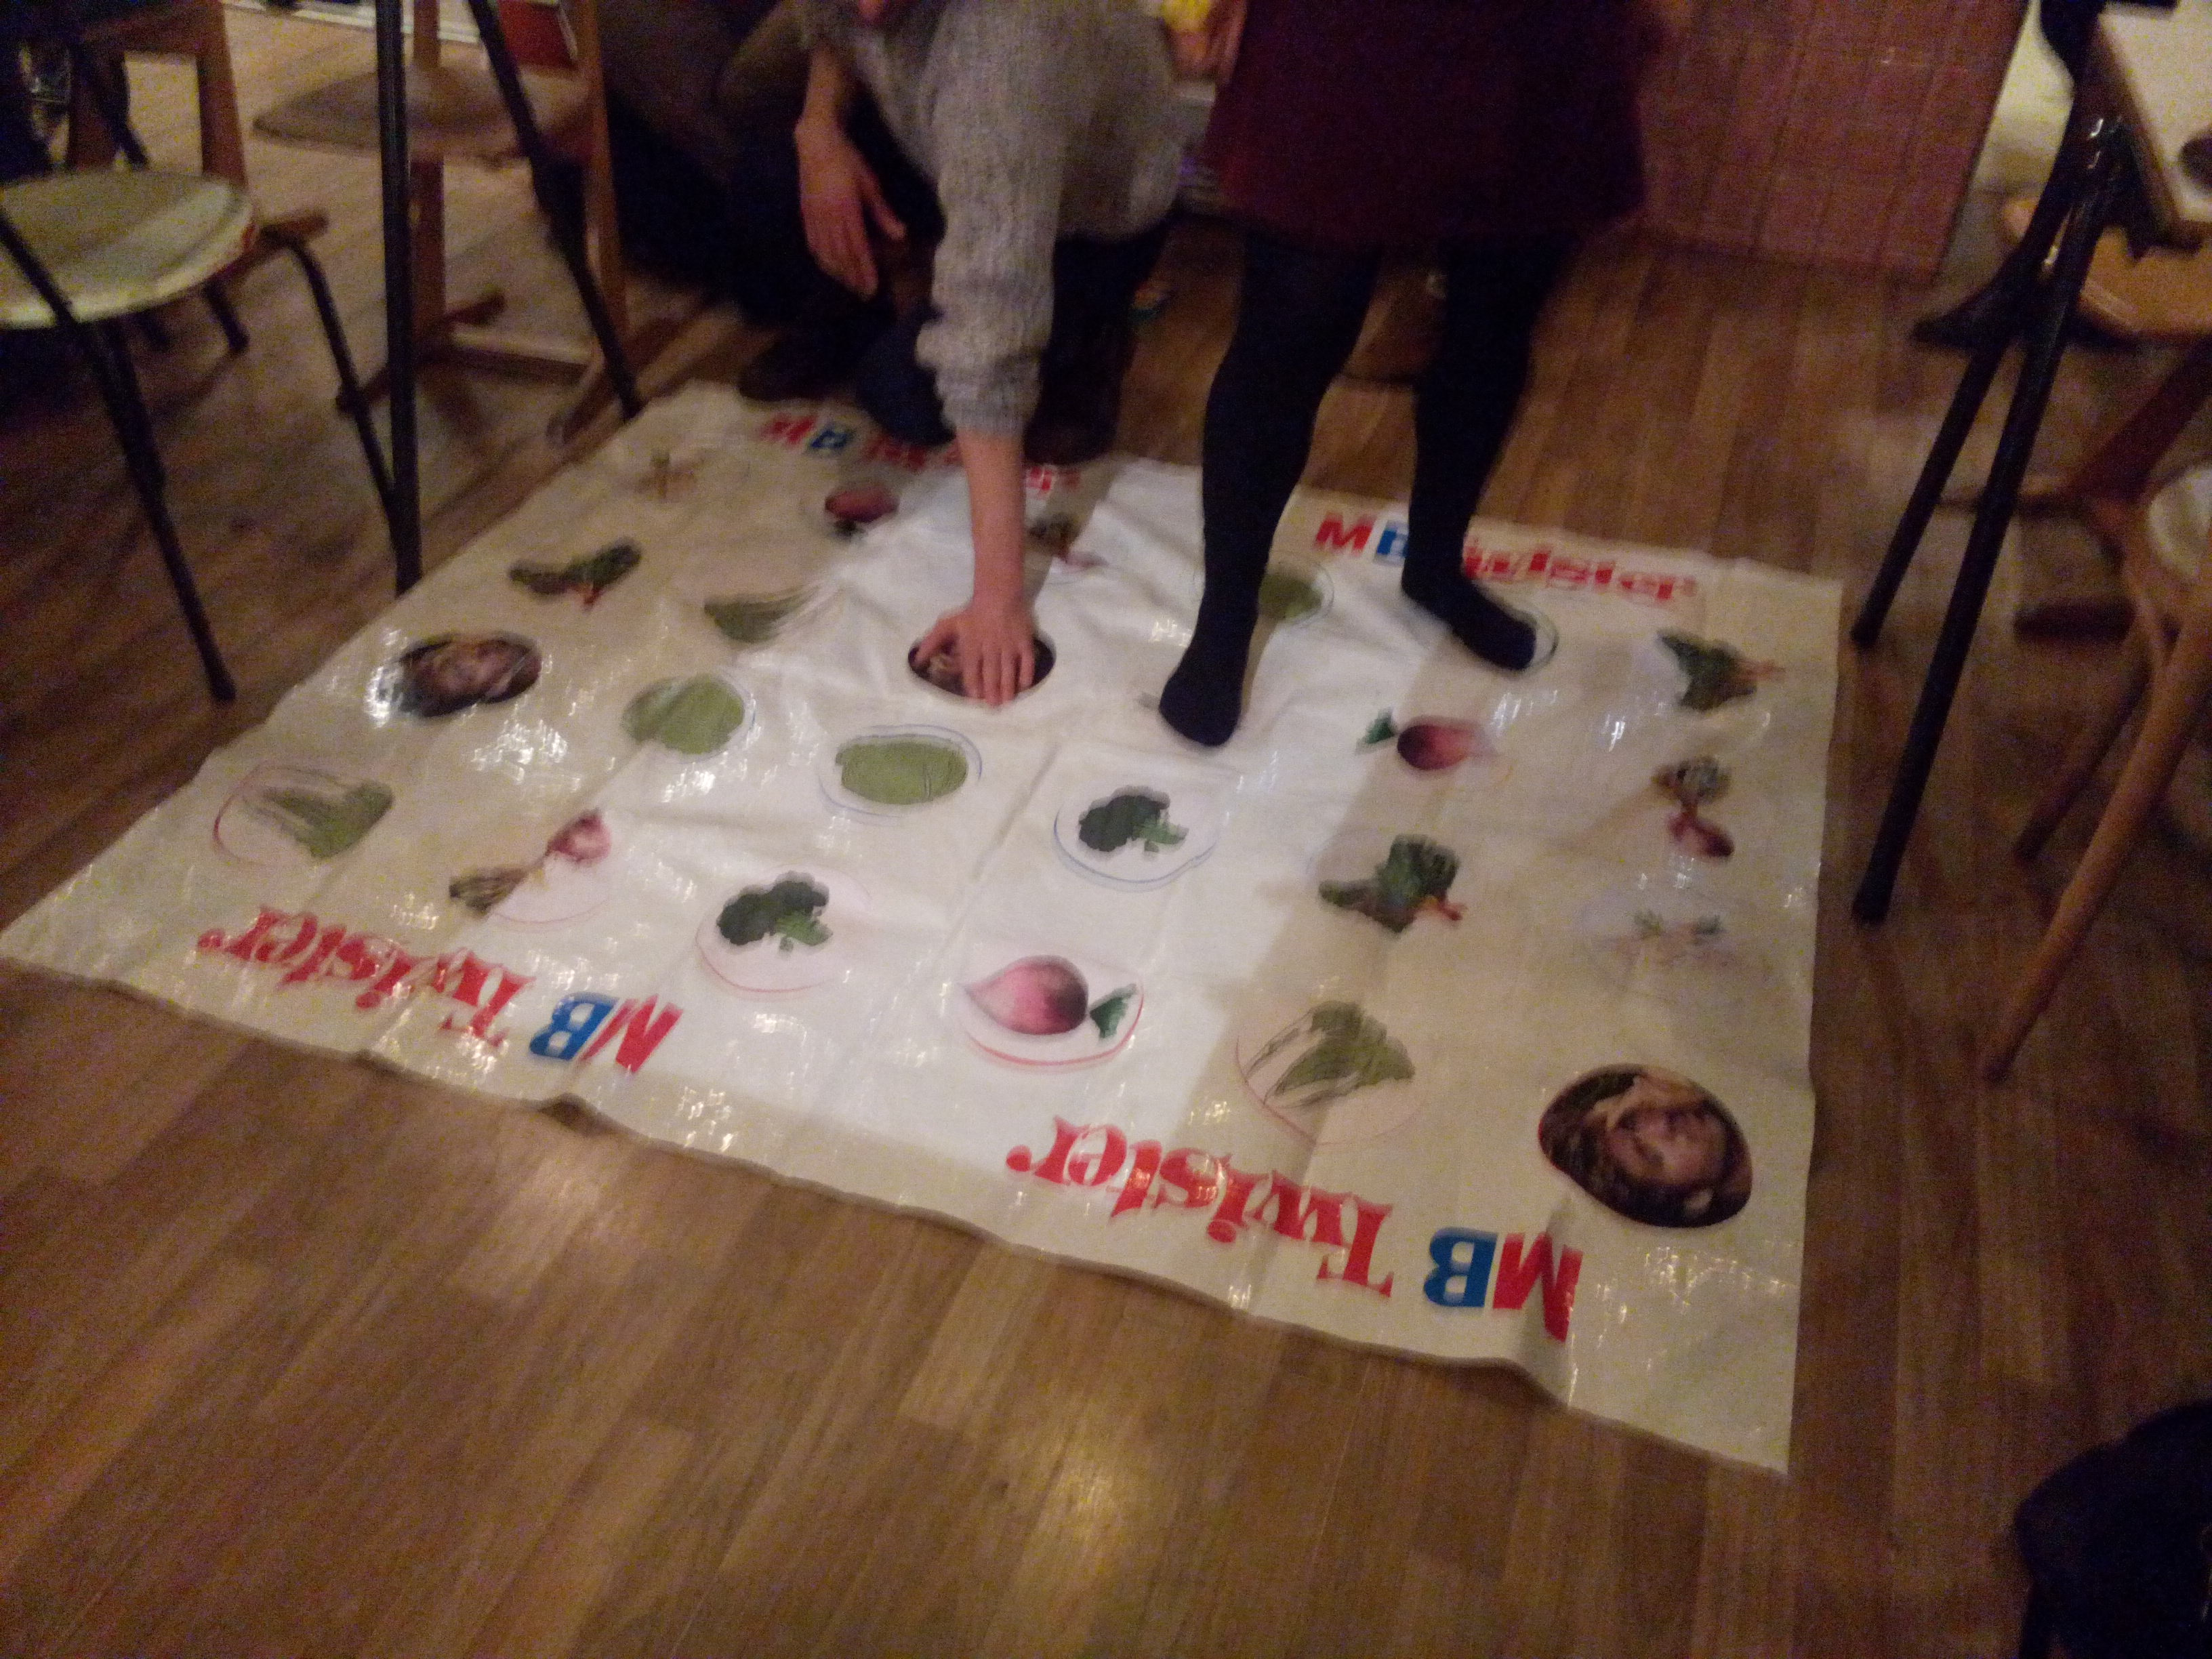 A Twister mat on the floor with people playing. The images are vegetables and George Michael's face.